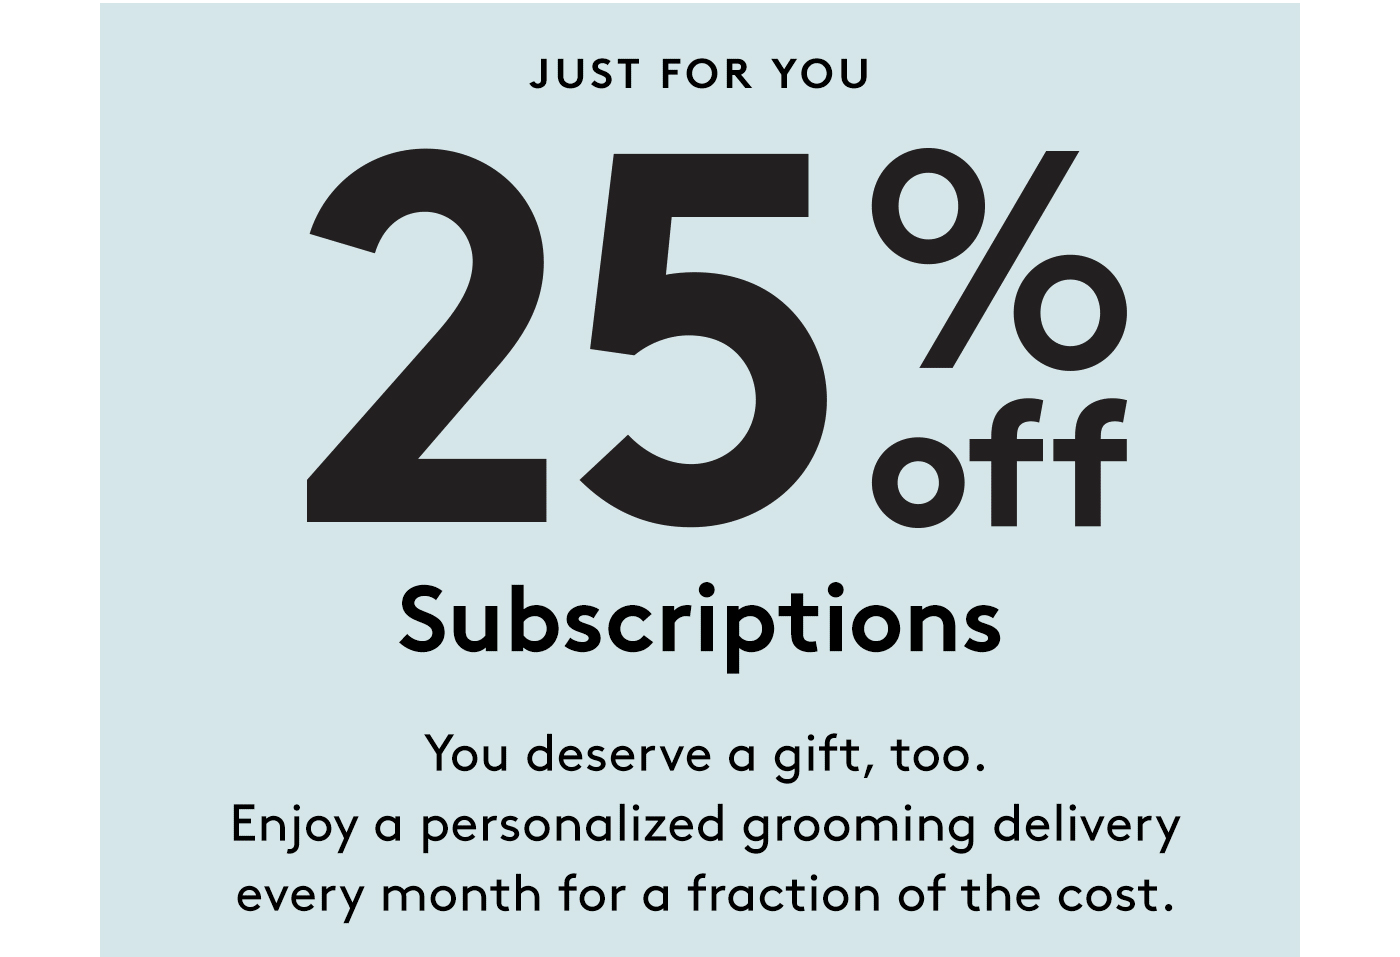 BirchboxMan Coupon: Save 25% On Subscriptions! LAST DAY!